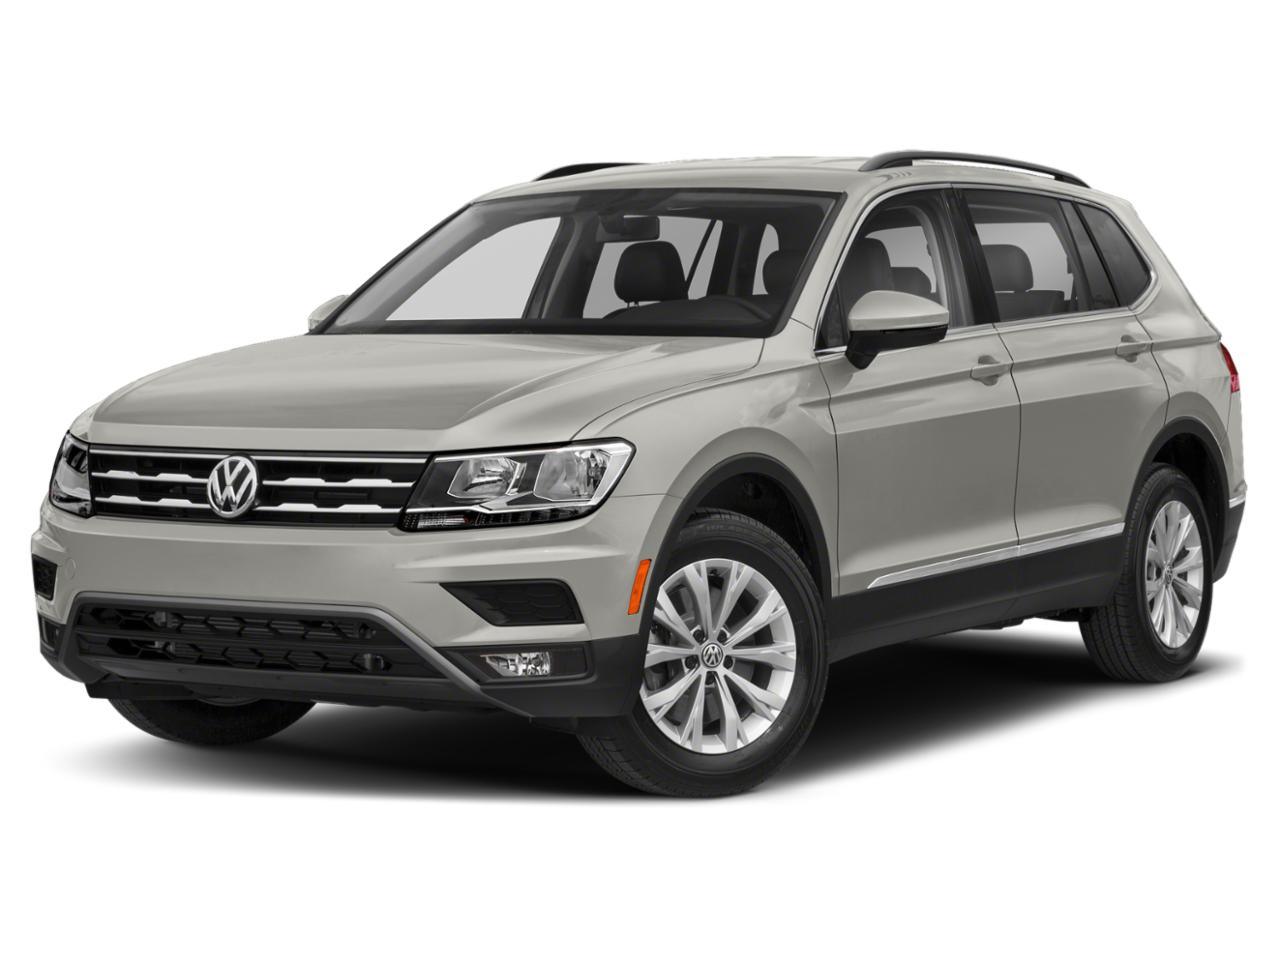 2021 Volkswagen Tiguan Vehicle Photo in San Antonio, TX 78257